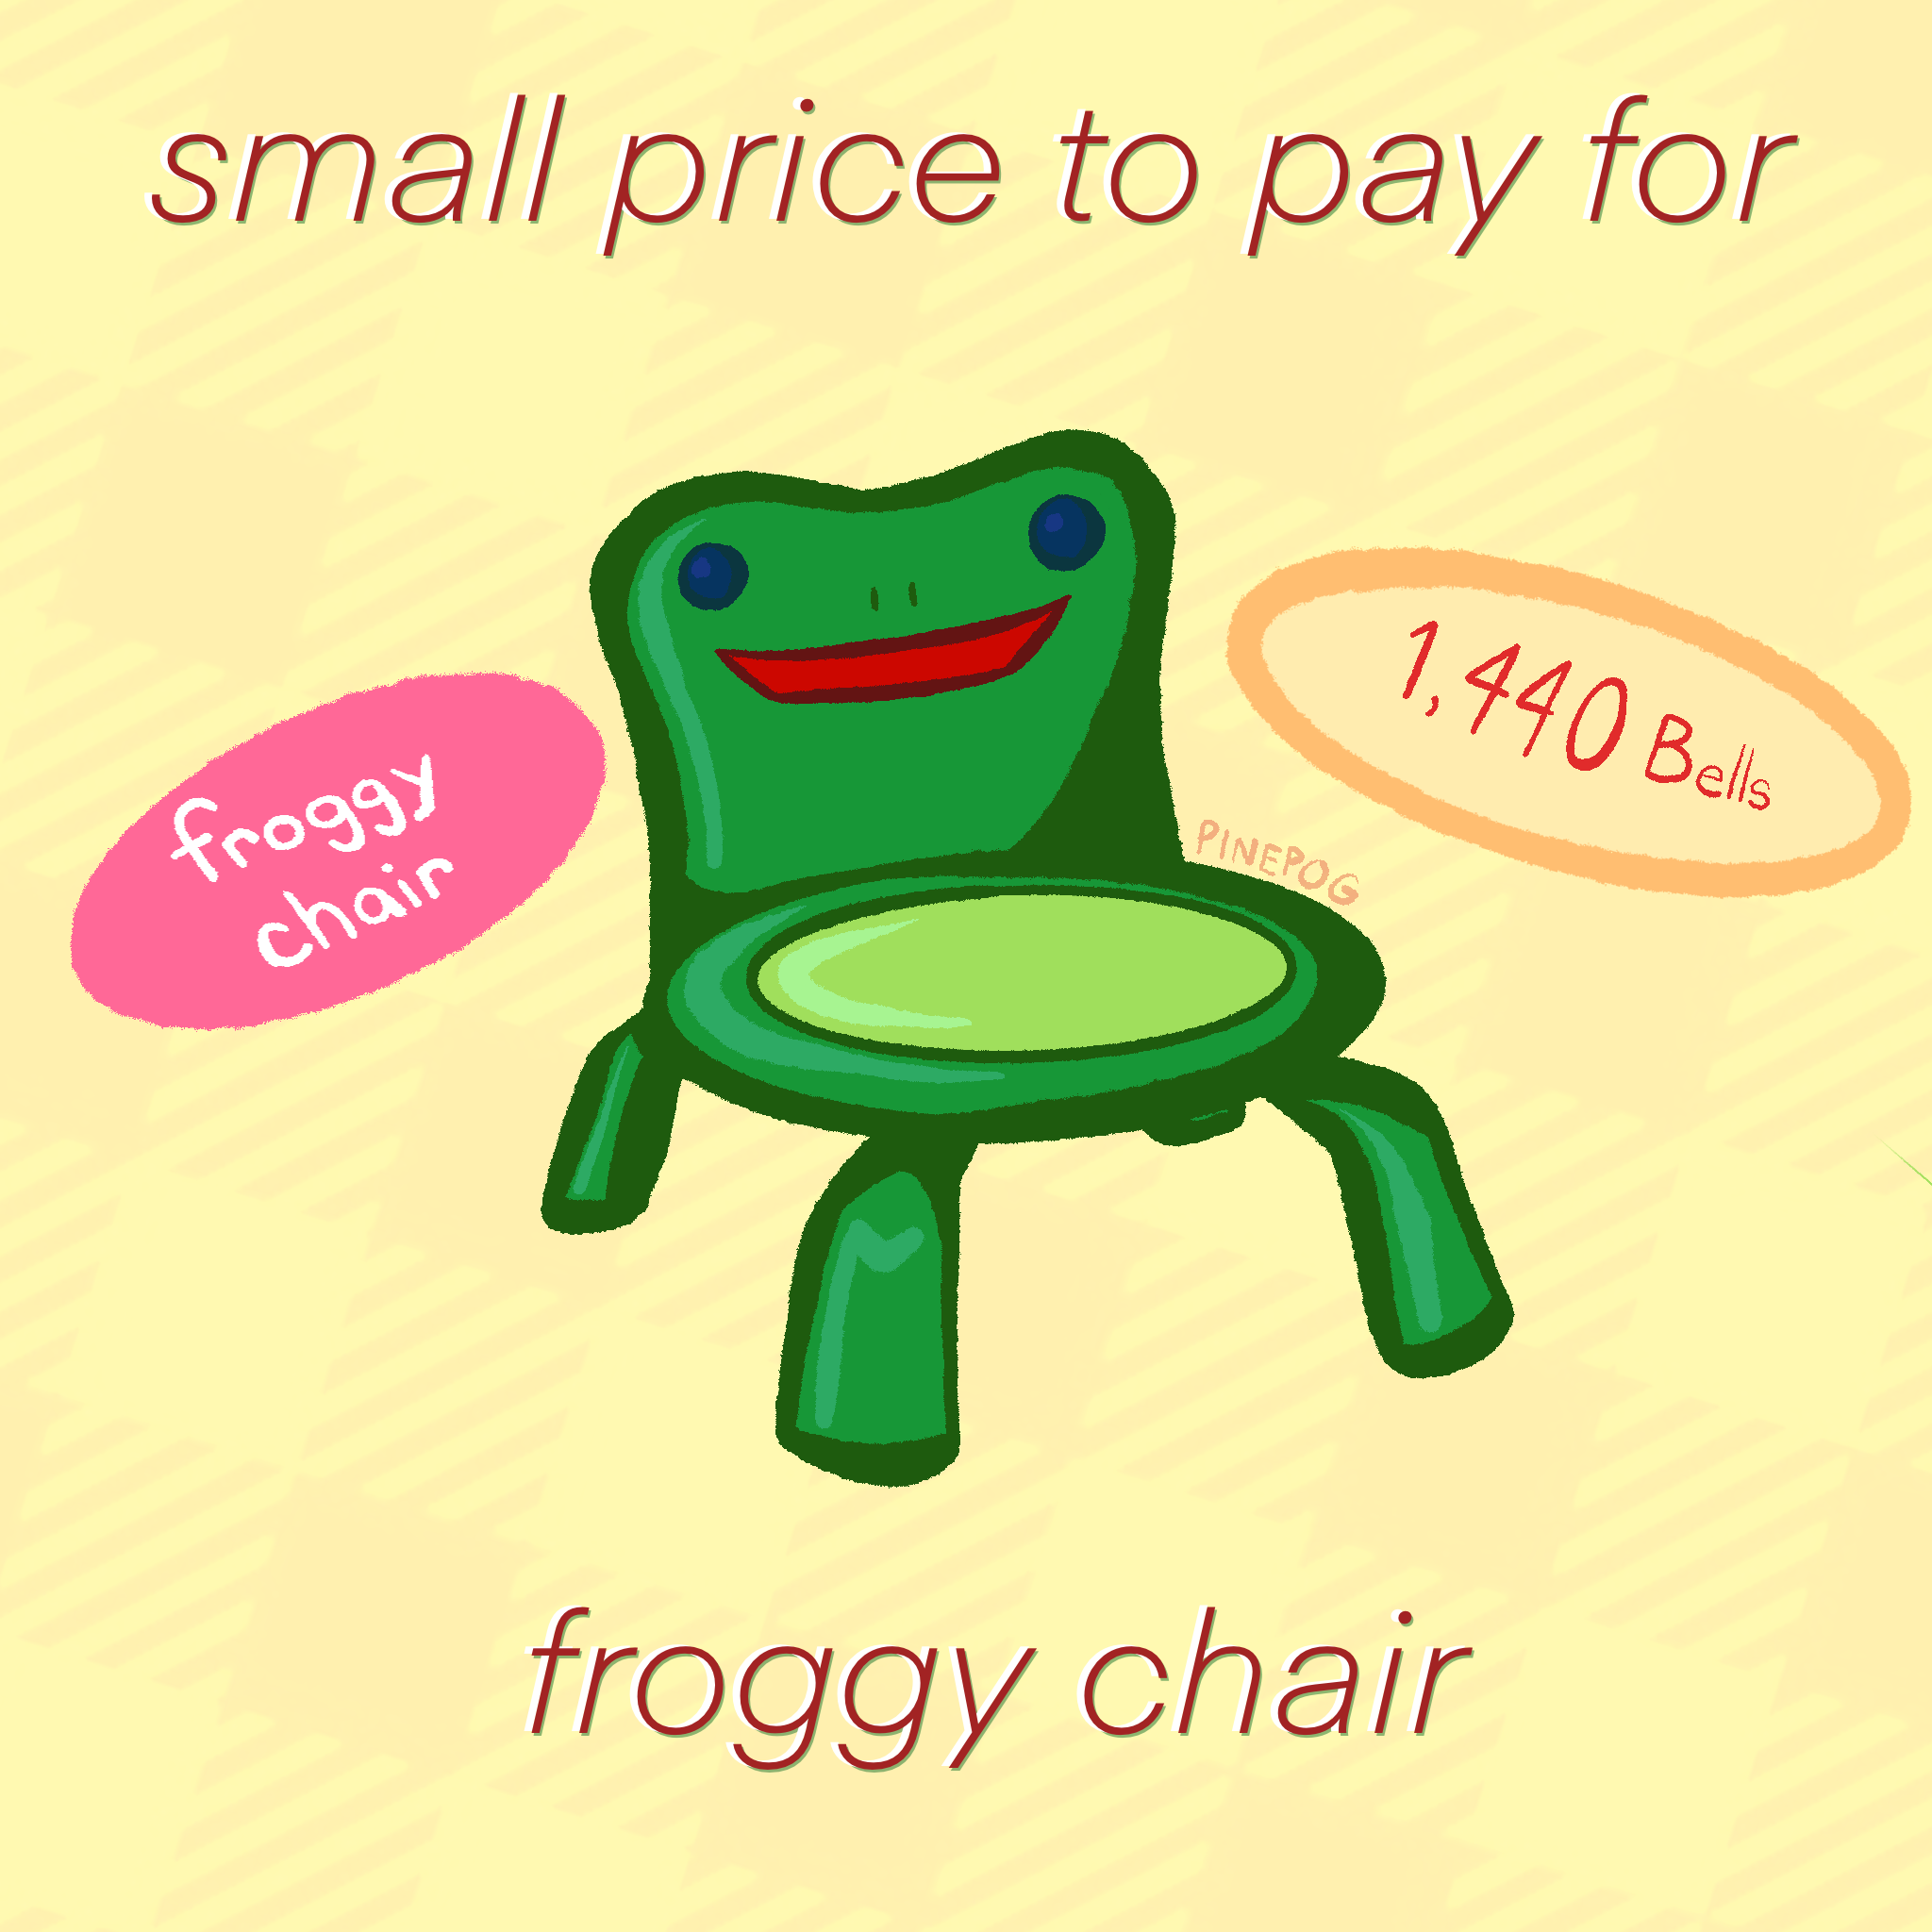 Small Price to Pay for Froggy Chair 8x8inch print in 2020